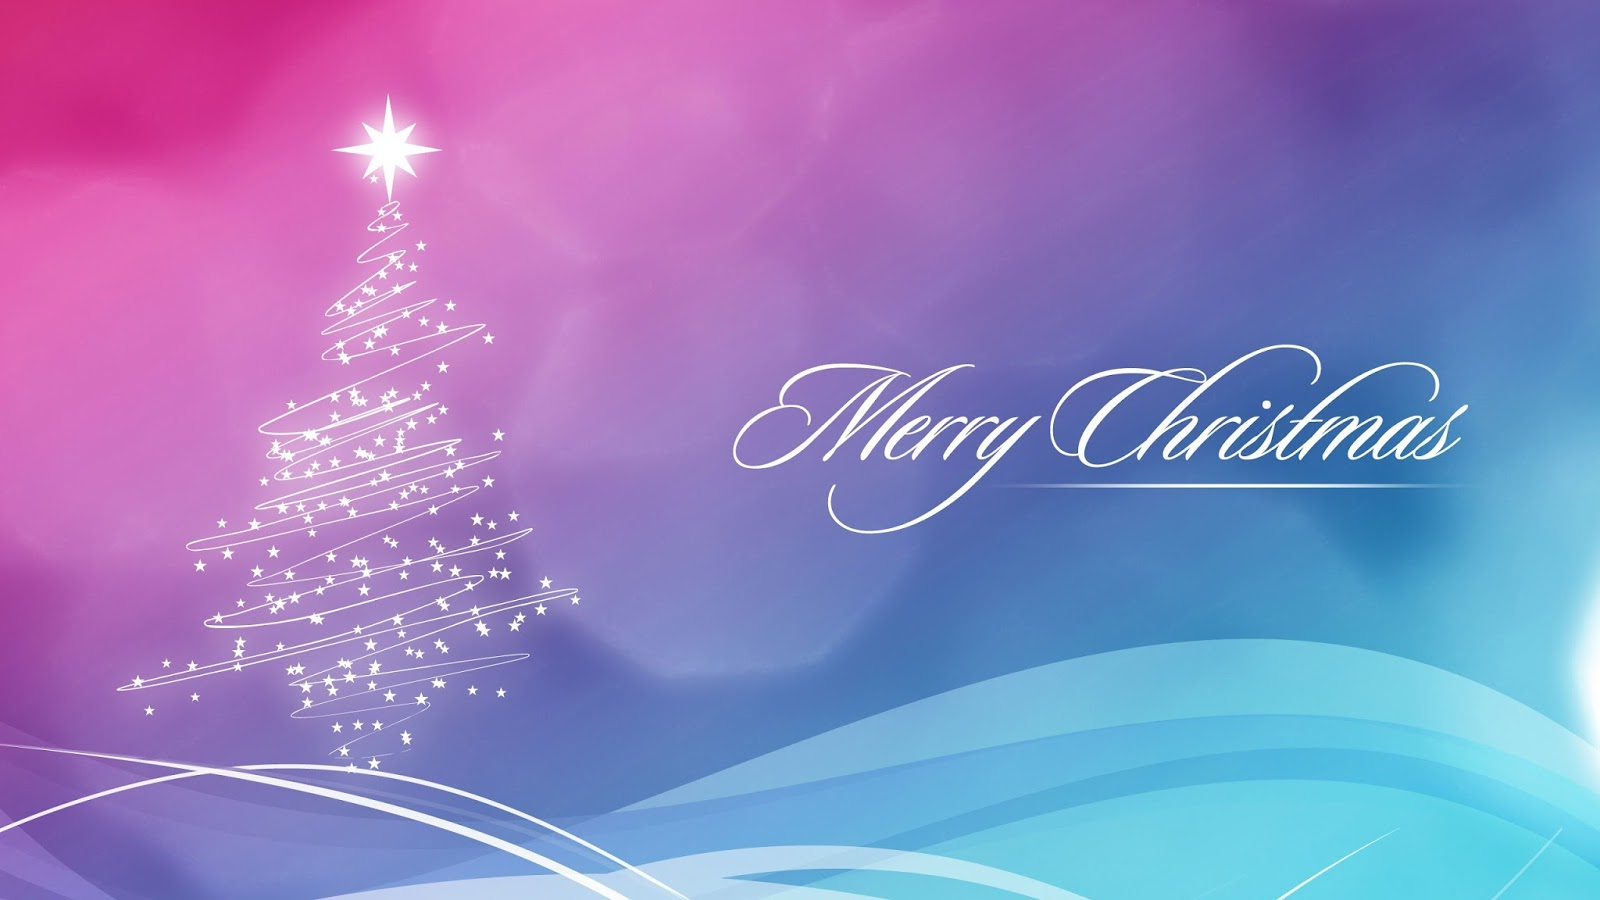 Best merry christmas cards images hd pictures for christmas 2017 merry christmas 2017 cards images kristyandbryce Gallery